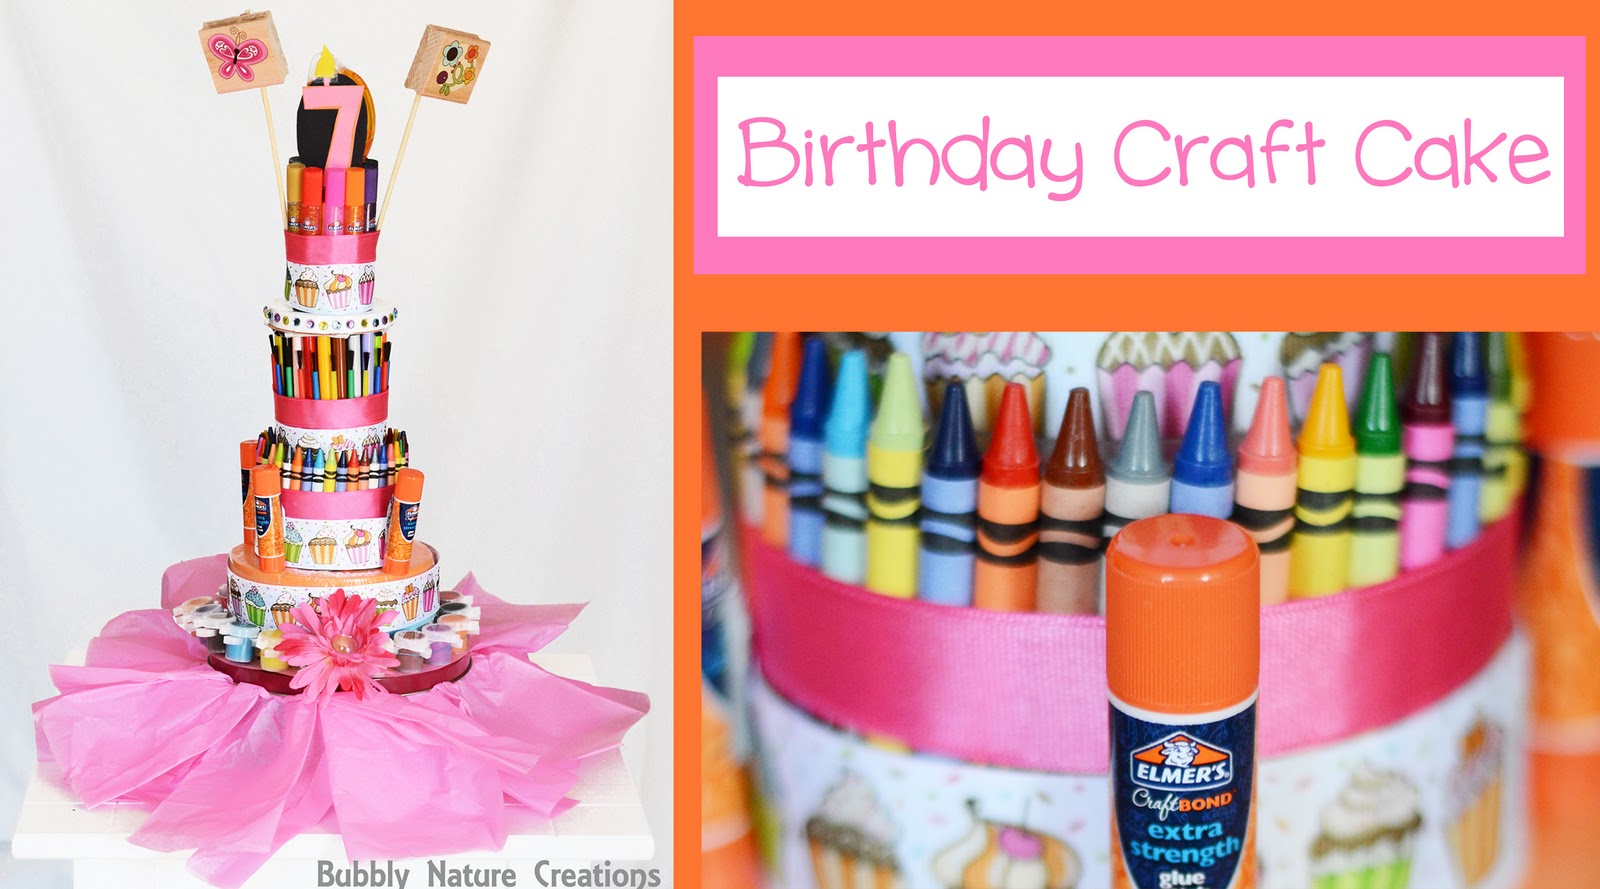 Birthday Cake Art And Craft : Birthday Craft Cake - Sprinkle Some Fun